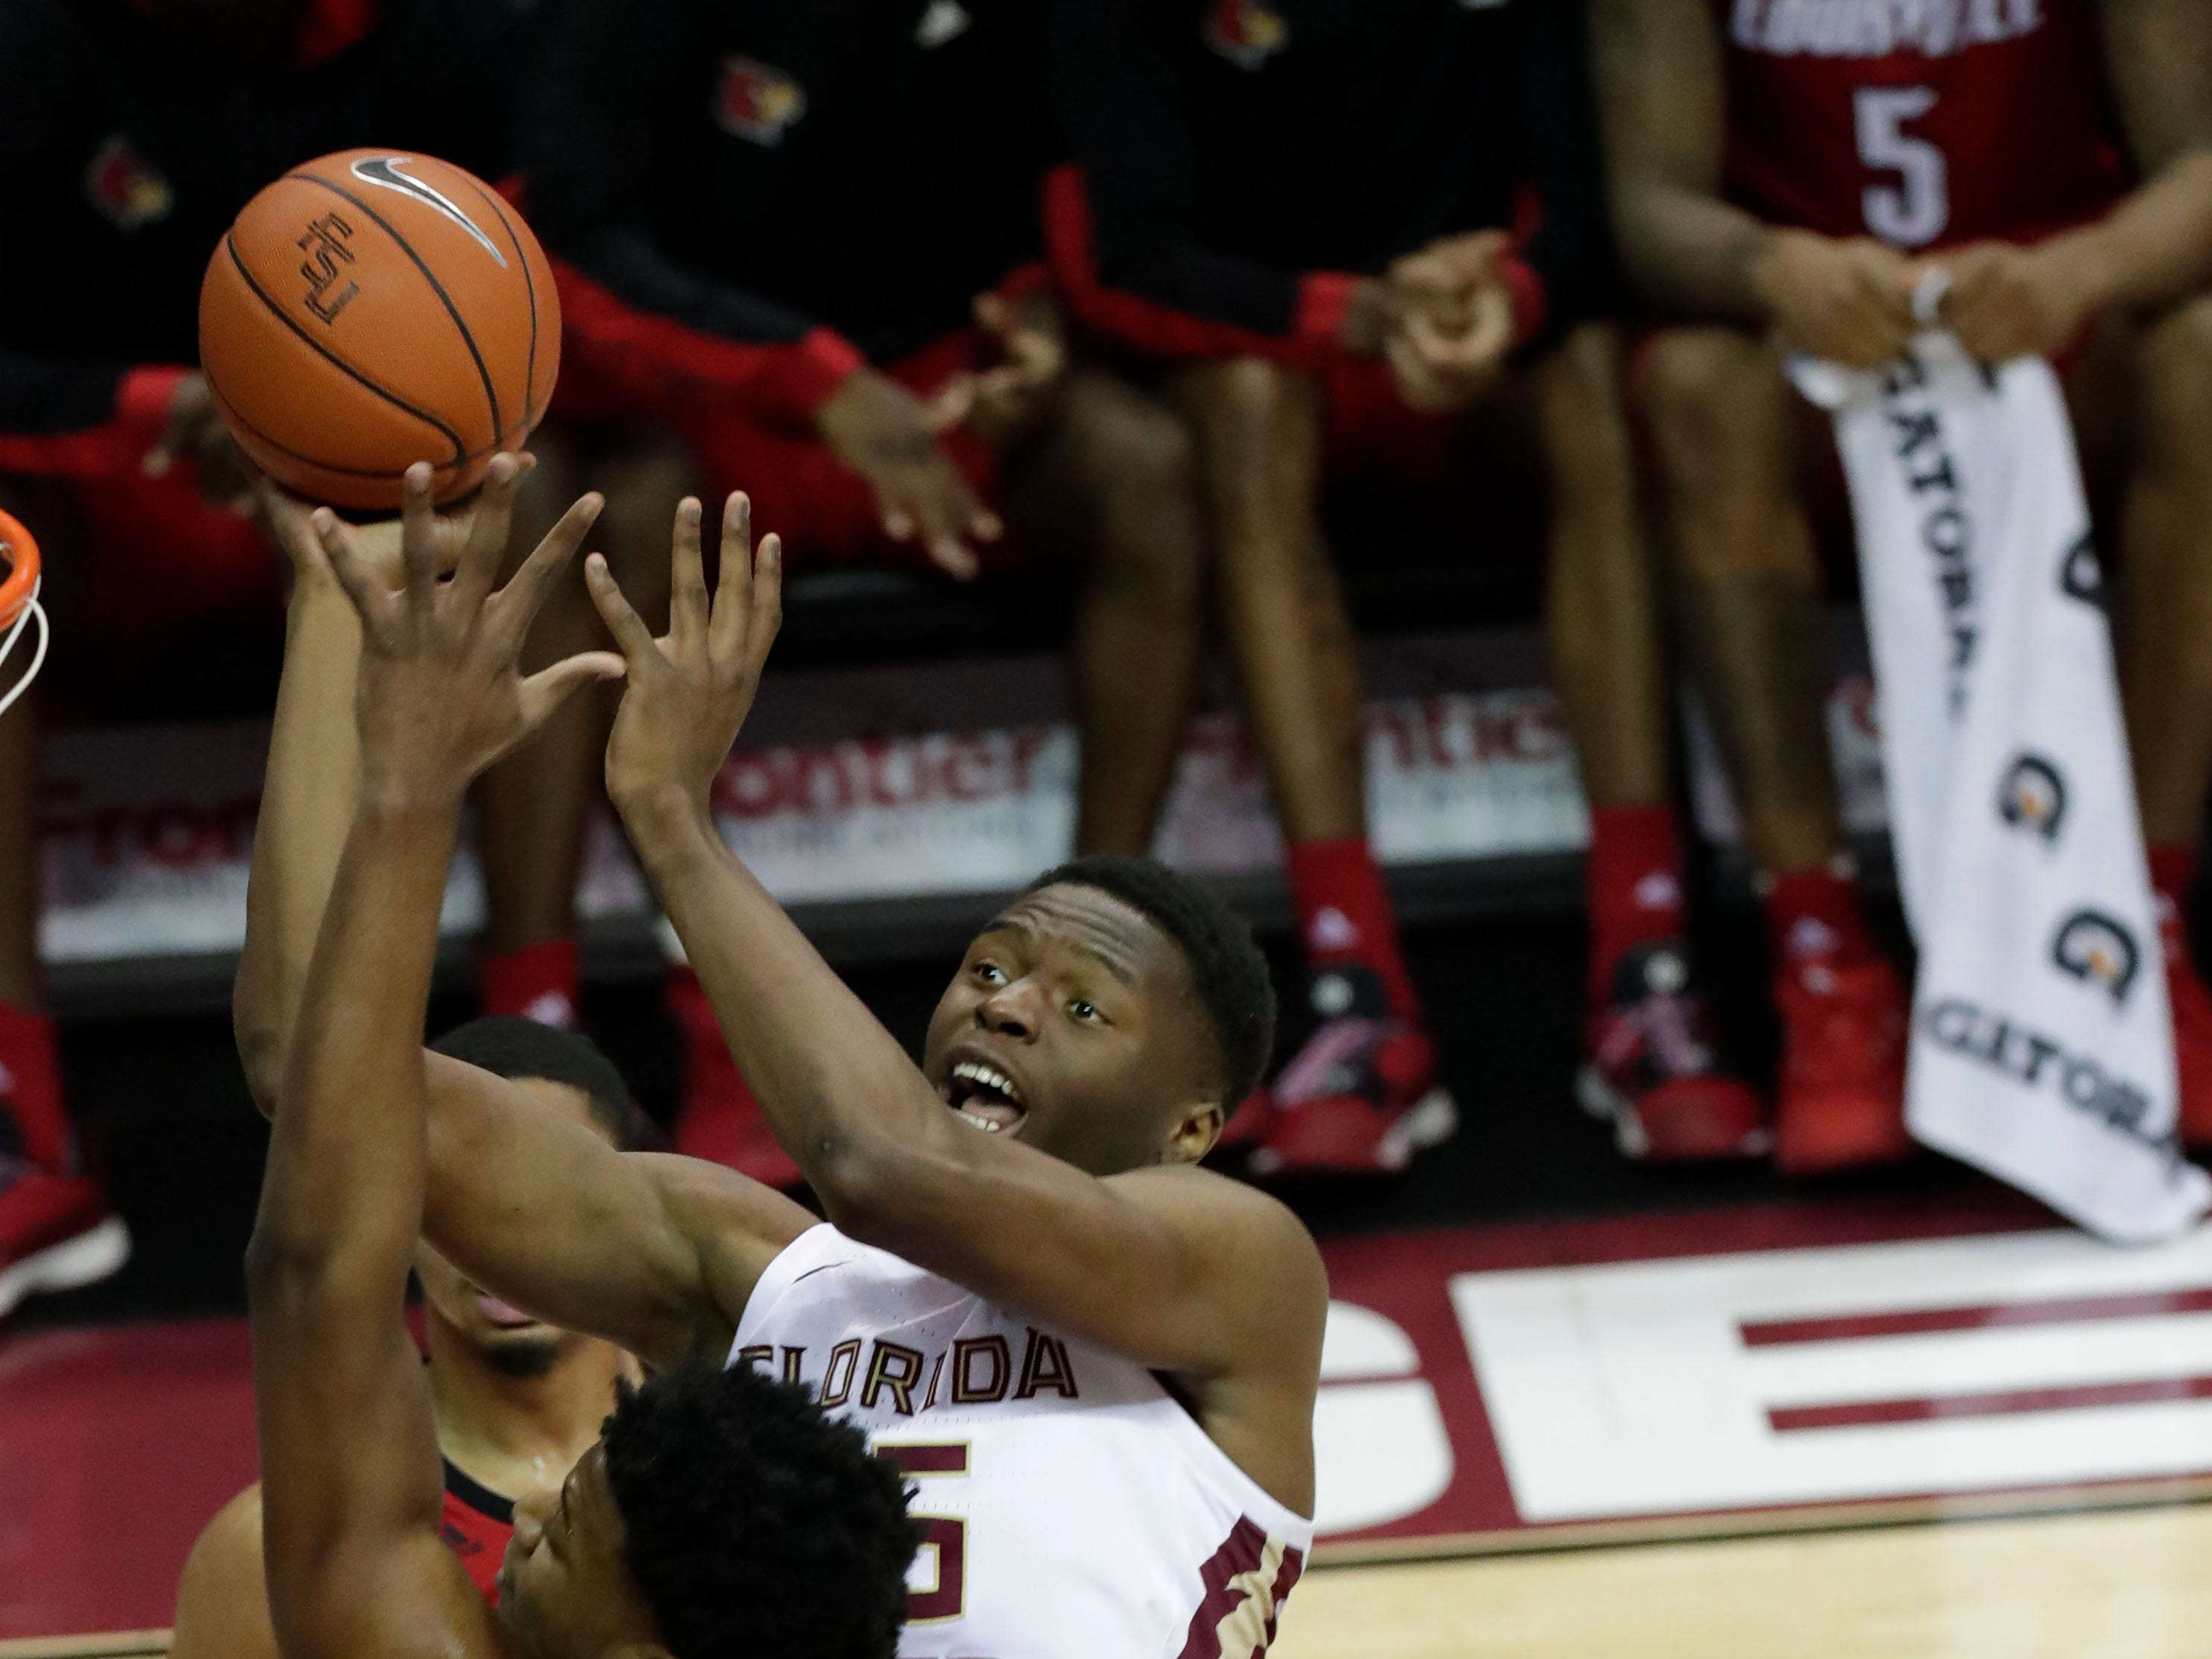 Florida State Seminoles forward Mfiondu Kabengele (25) shoots from inside the paint with Louisville Cardinals center Steven Enoch (23) going up to block the shot. The Florida State Seminoles host the Louisville Cardinals at the Tucker Civic Center, Saturday Feb. 9, 2019.